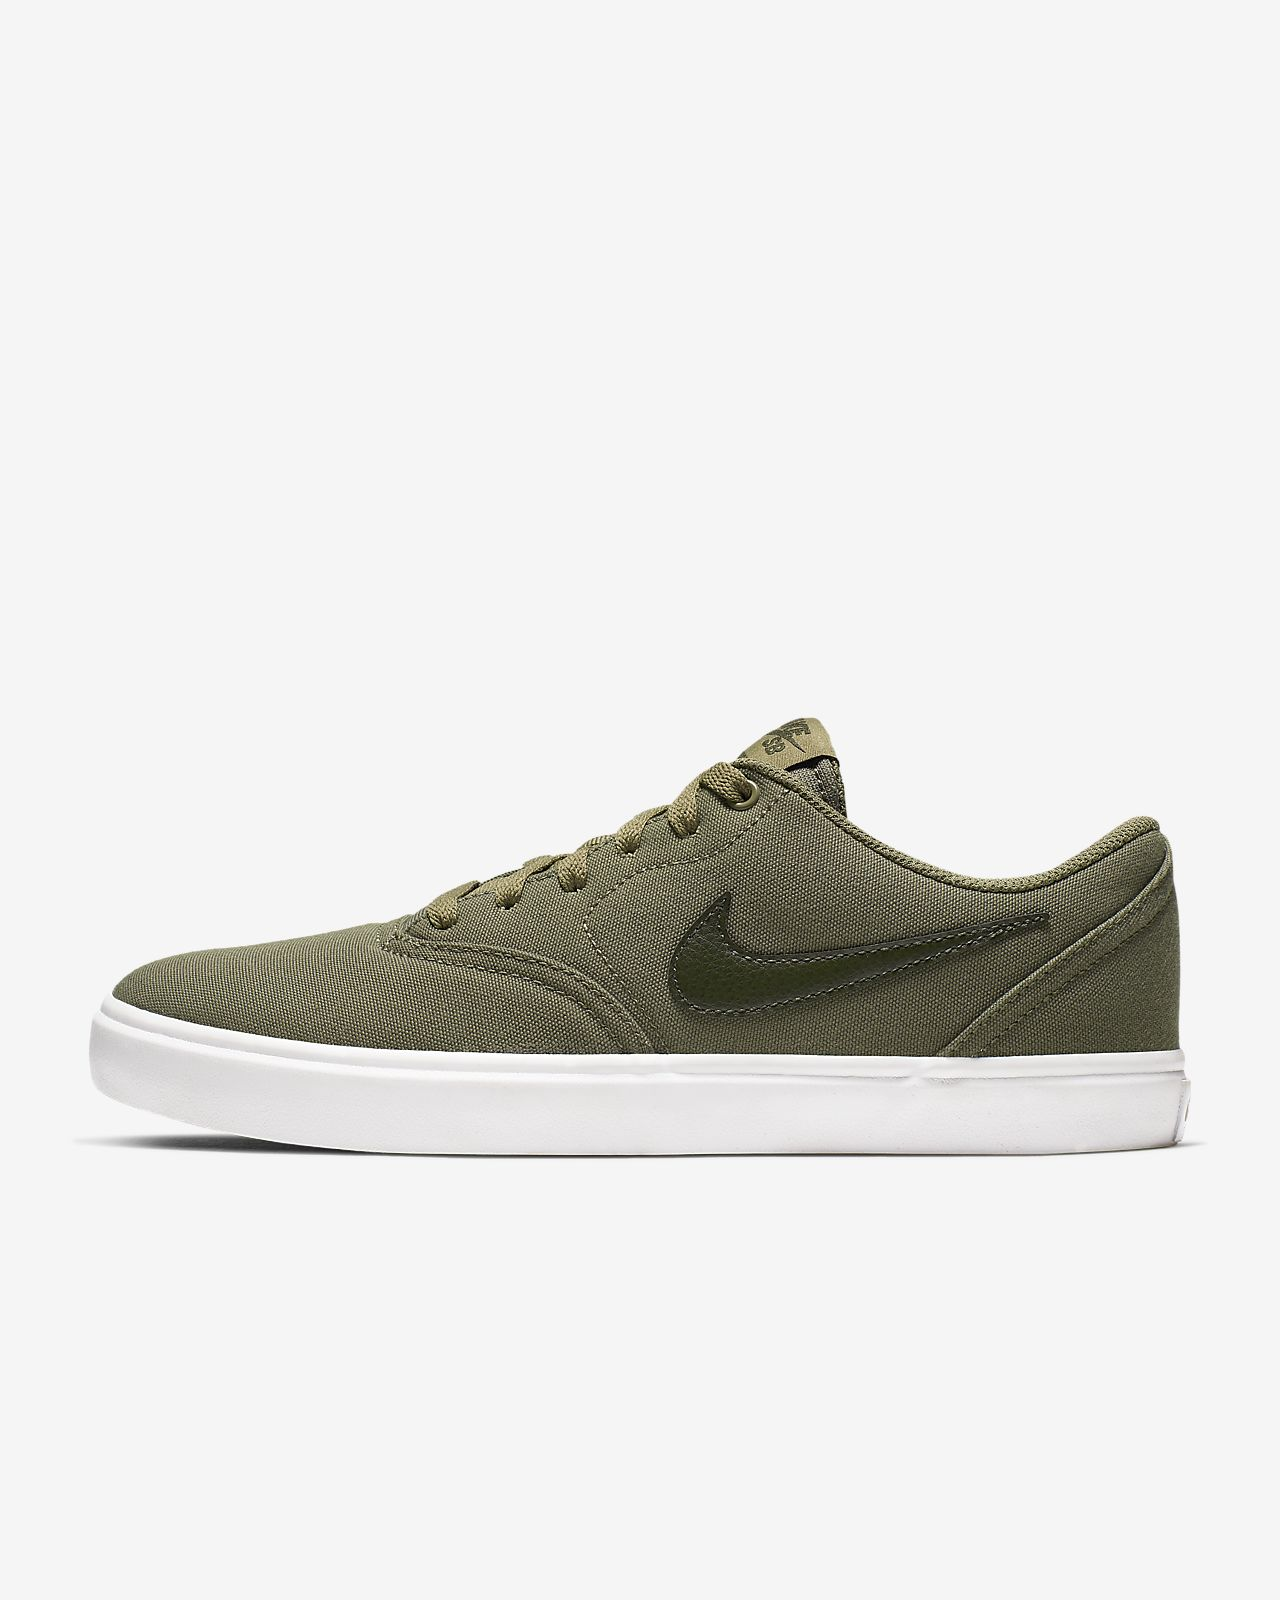 check out 6f3ca a6d37 ... Chaussure de skateboard Nike SB Check Solarsoft Canvas pour Homme